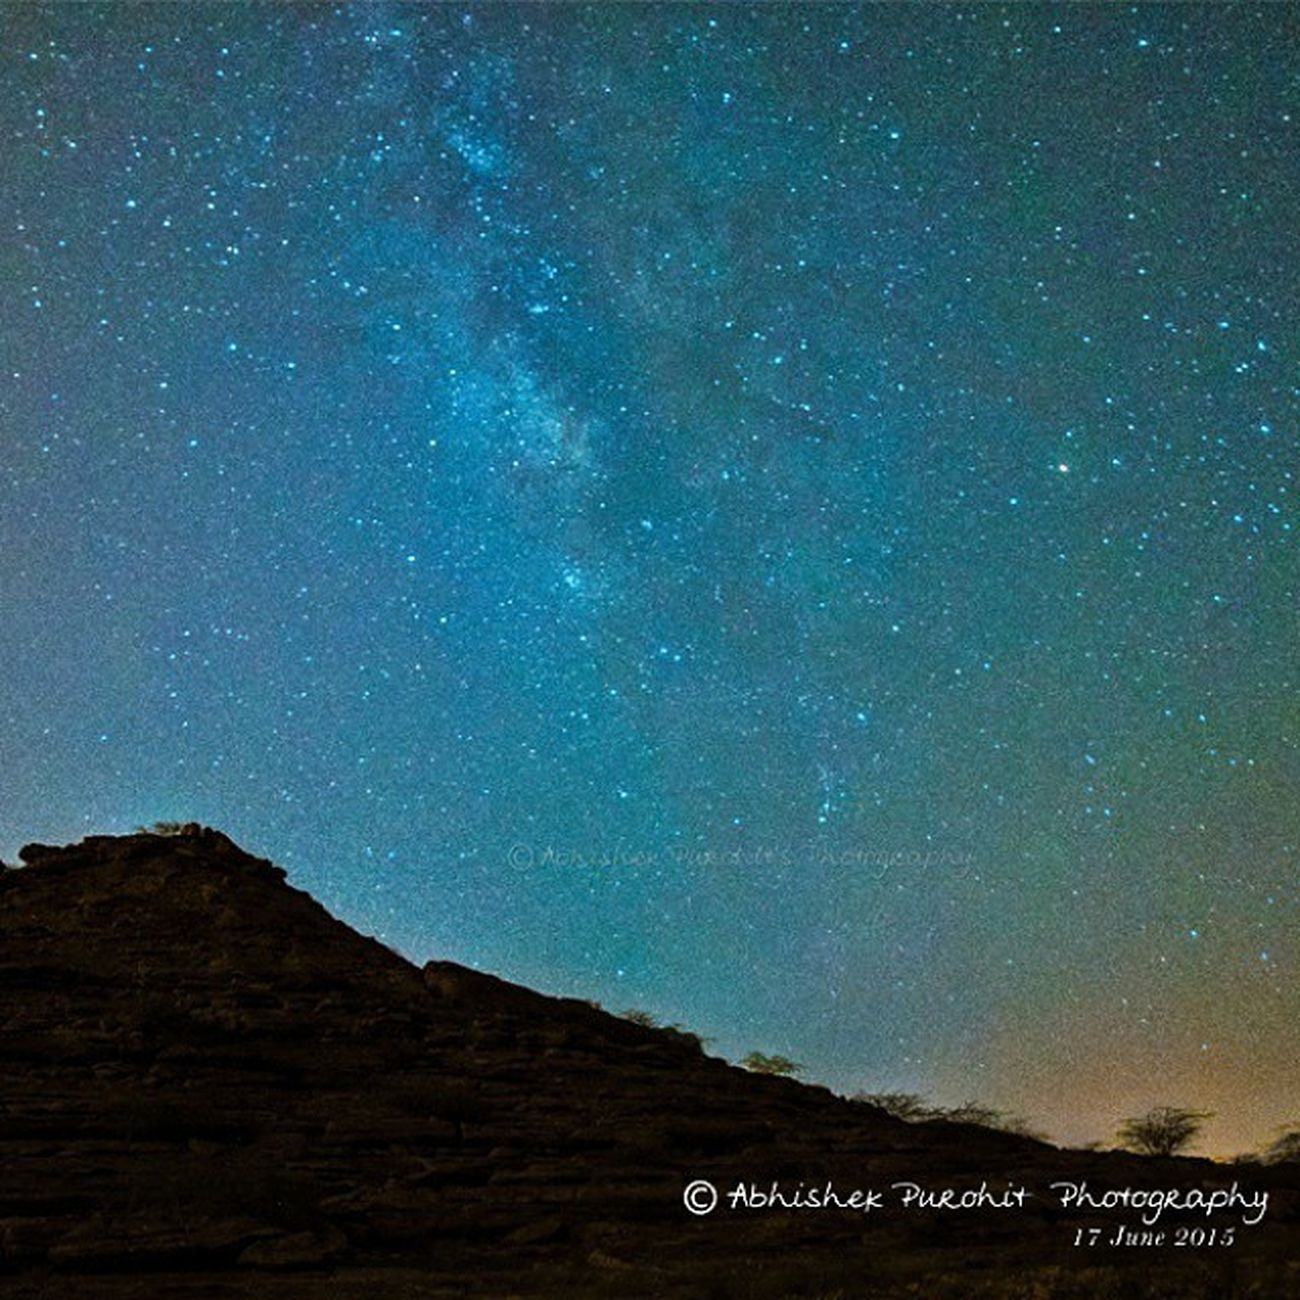 Galaxy taken me Jodhpur Jodhpurs Photographie  Timelapse Travel Concept Animation Jodhpuri Knowledge Learn Learning India Indian Rajasthan Like4like Astrophotography Milkyway Jaipurlove Jodhpur_shotout Rangeelorajastan Instajodhpur Igersjodhpur Instajodhpur Instaudaipur